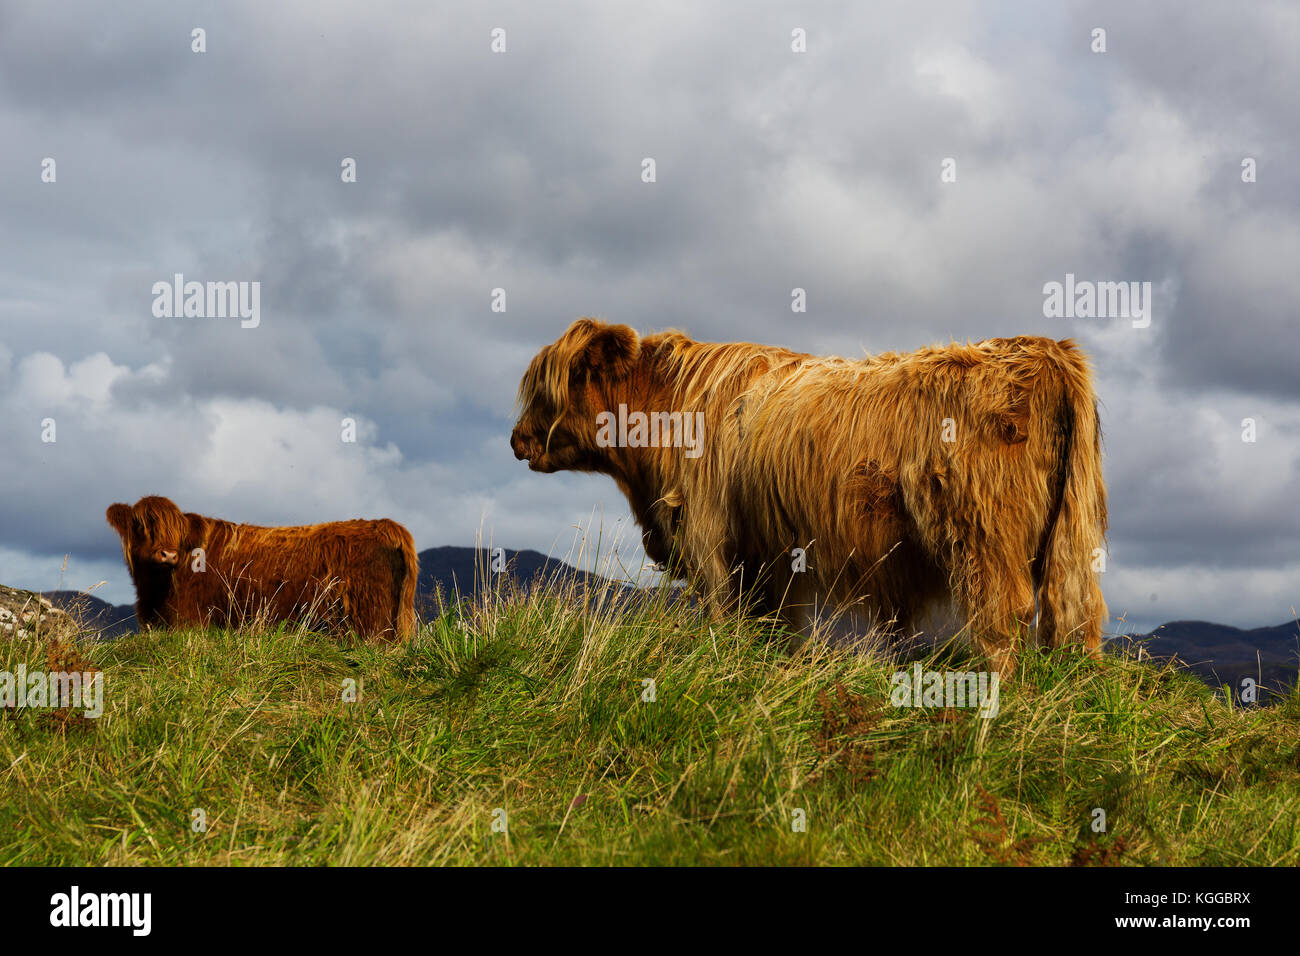 Scottish Highland cattle grazing in a field and pasture on the Isle of Mull, Scotland - Stock Image